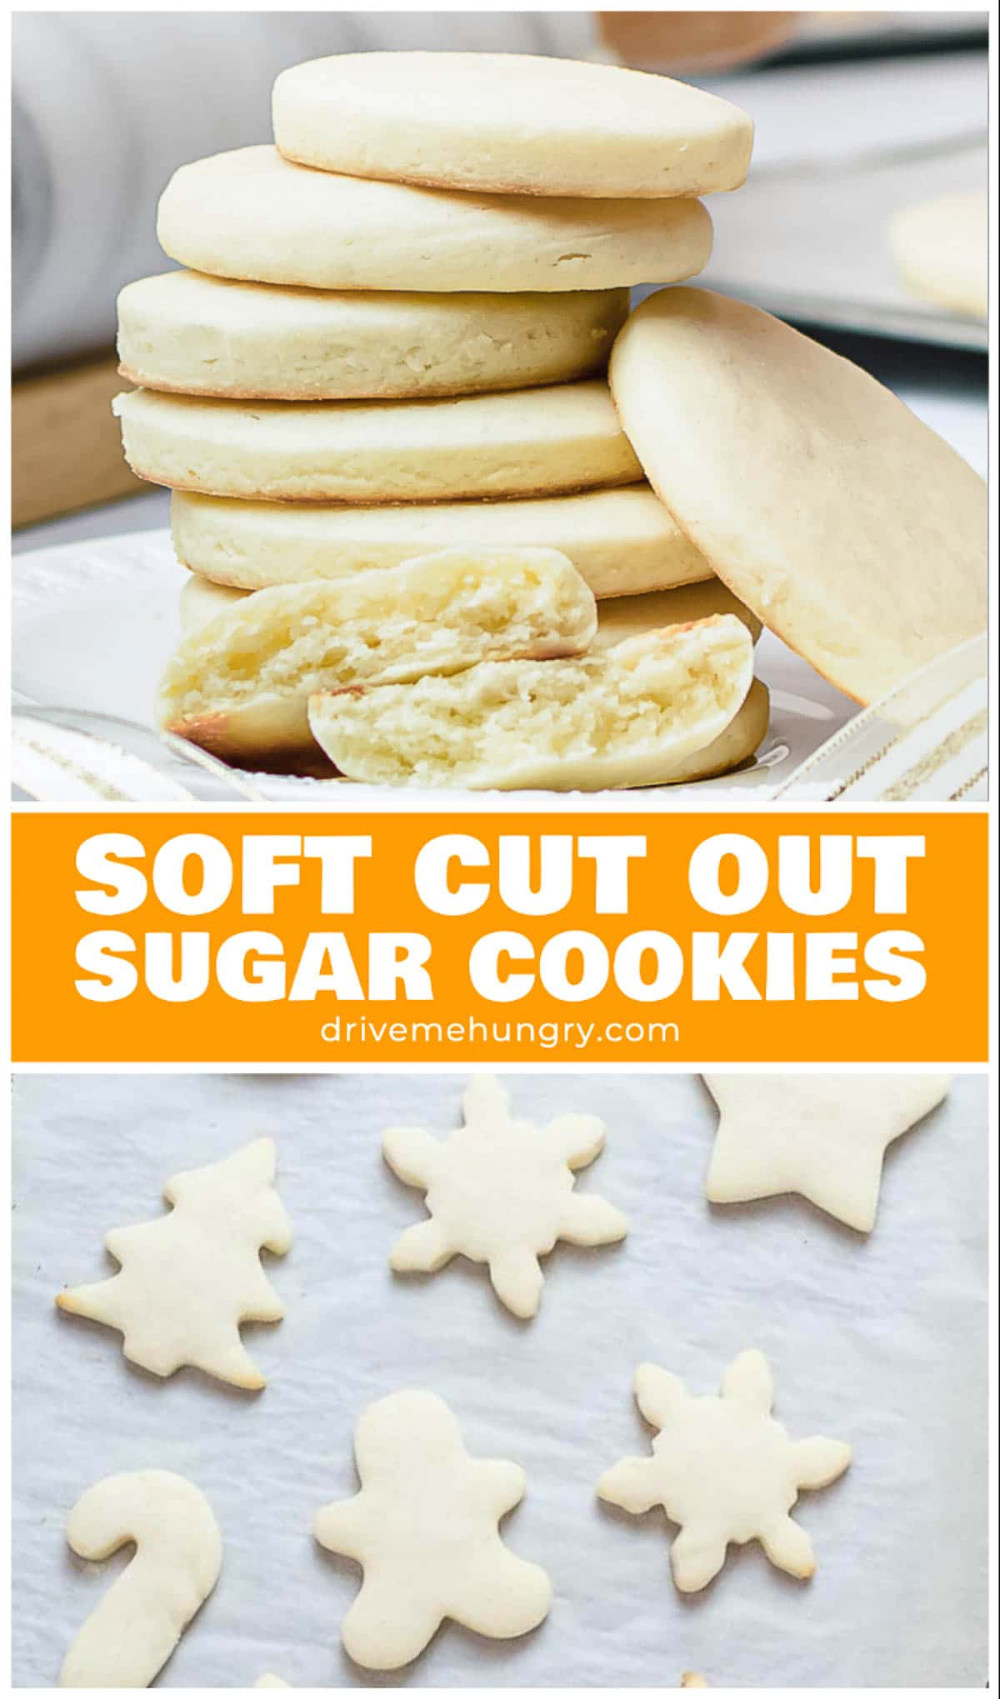 The softest cut out sugar cookies that melt in your mouth & hold their shape. These soft cream cheese sugar cookies are perfect for decorating with icing! #sugarcookies #cookies #softcookies #drivemehungry | drivemehungry.com